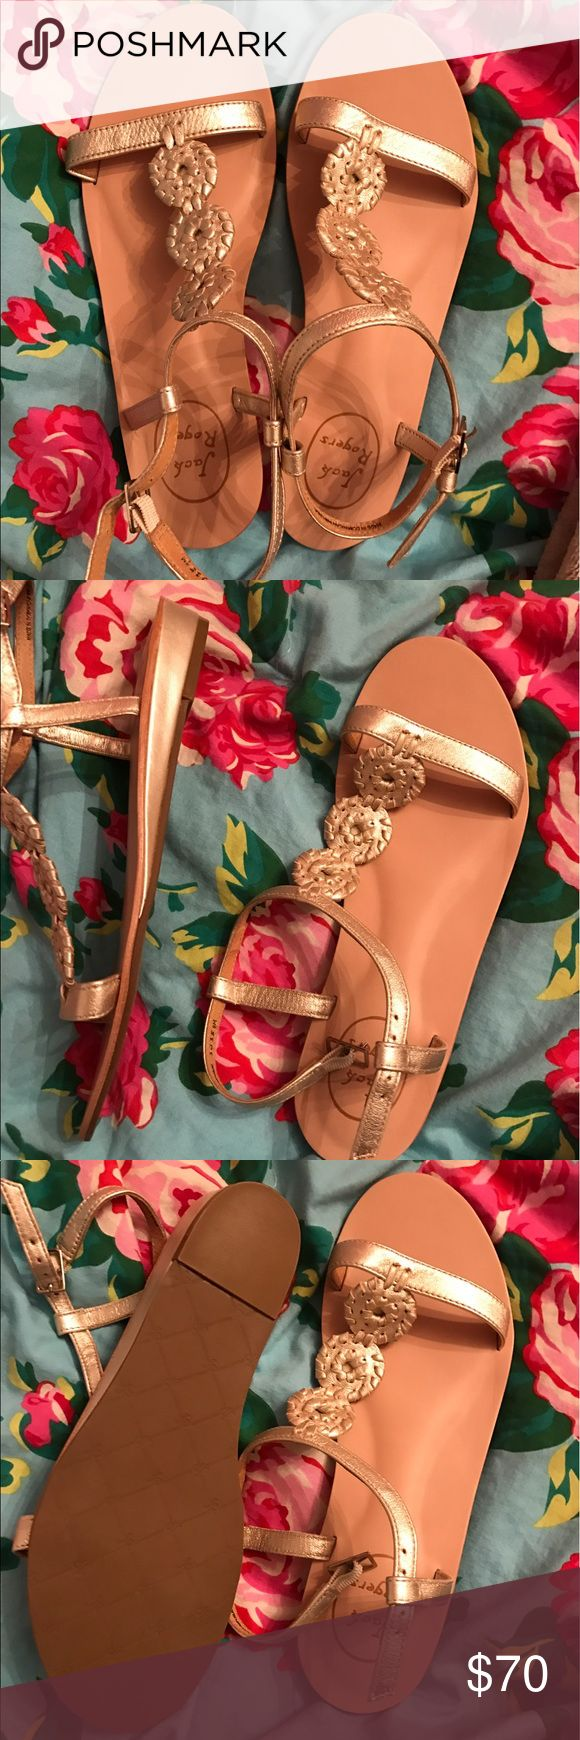 New Jack Rogers Sandals These are super cute Jack Rogers gold sandals! They are marked as a size 8, but they were incorrectly sized. They are actually a size 7. These have never been worn and are so adorable! They are new without tags or box! Jack Rogers Shoes Sandals